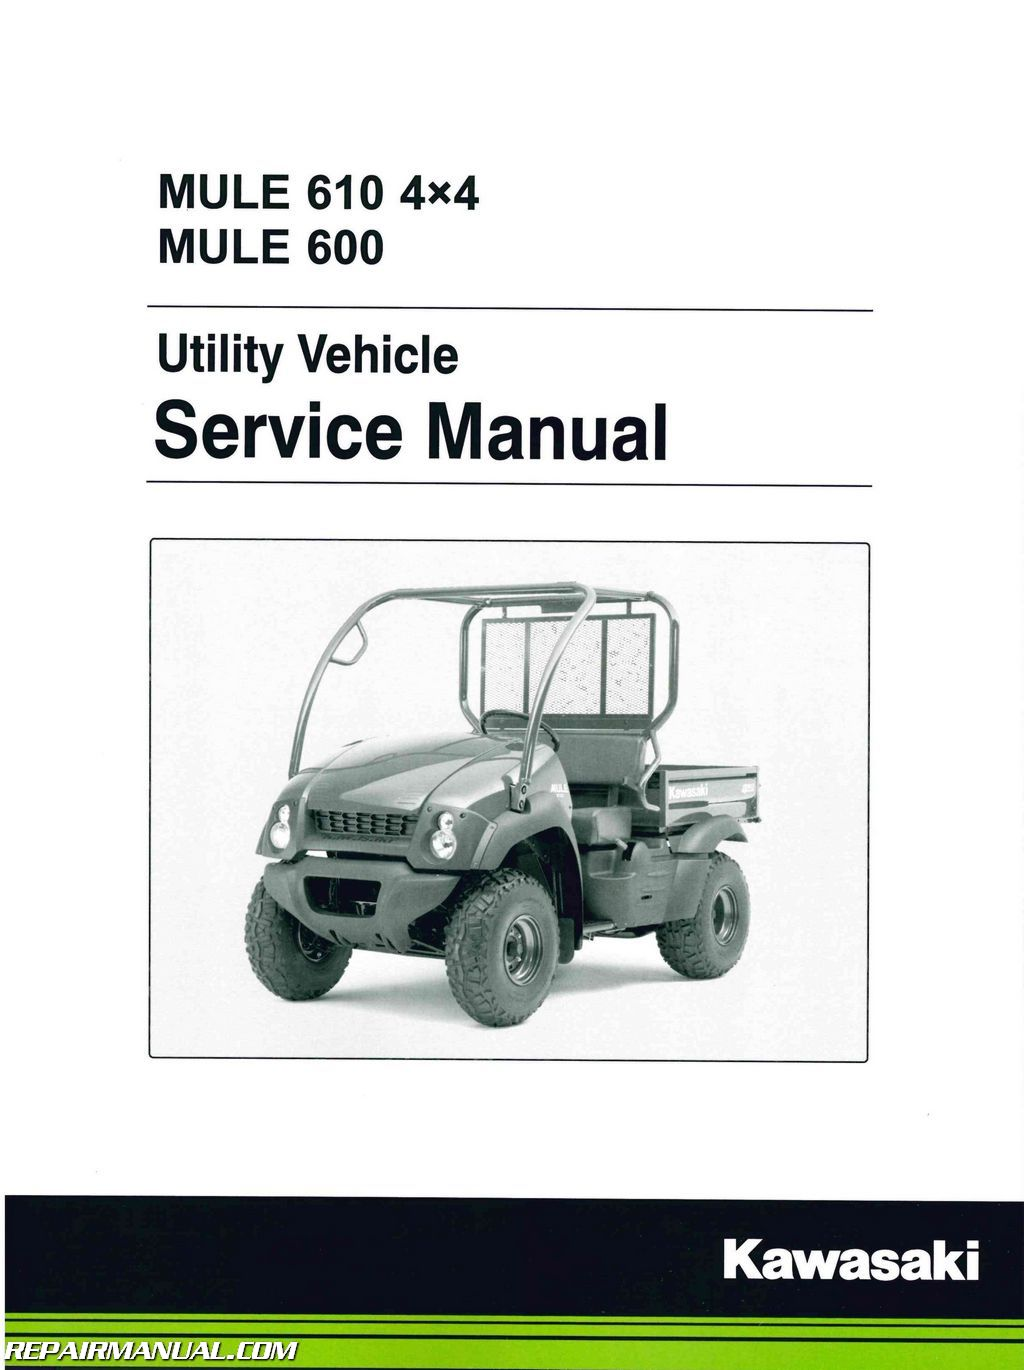 2005-2016 Kawasaki KAF400 UTV Mule 610 4×4 600 Service Manual on